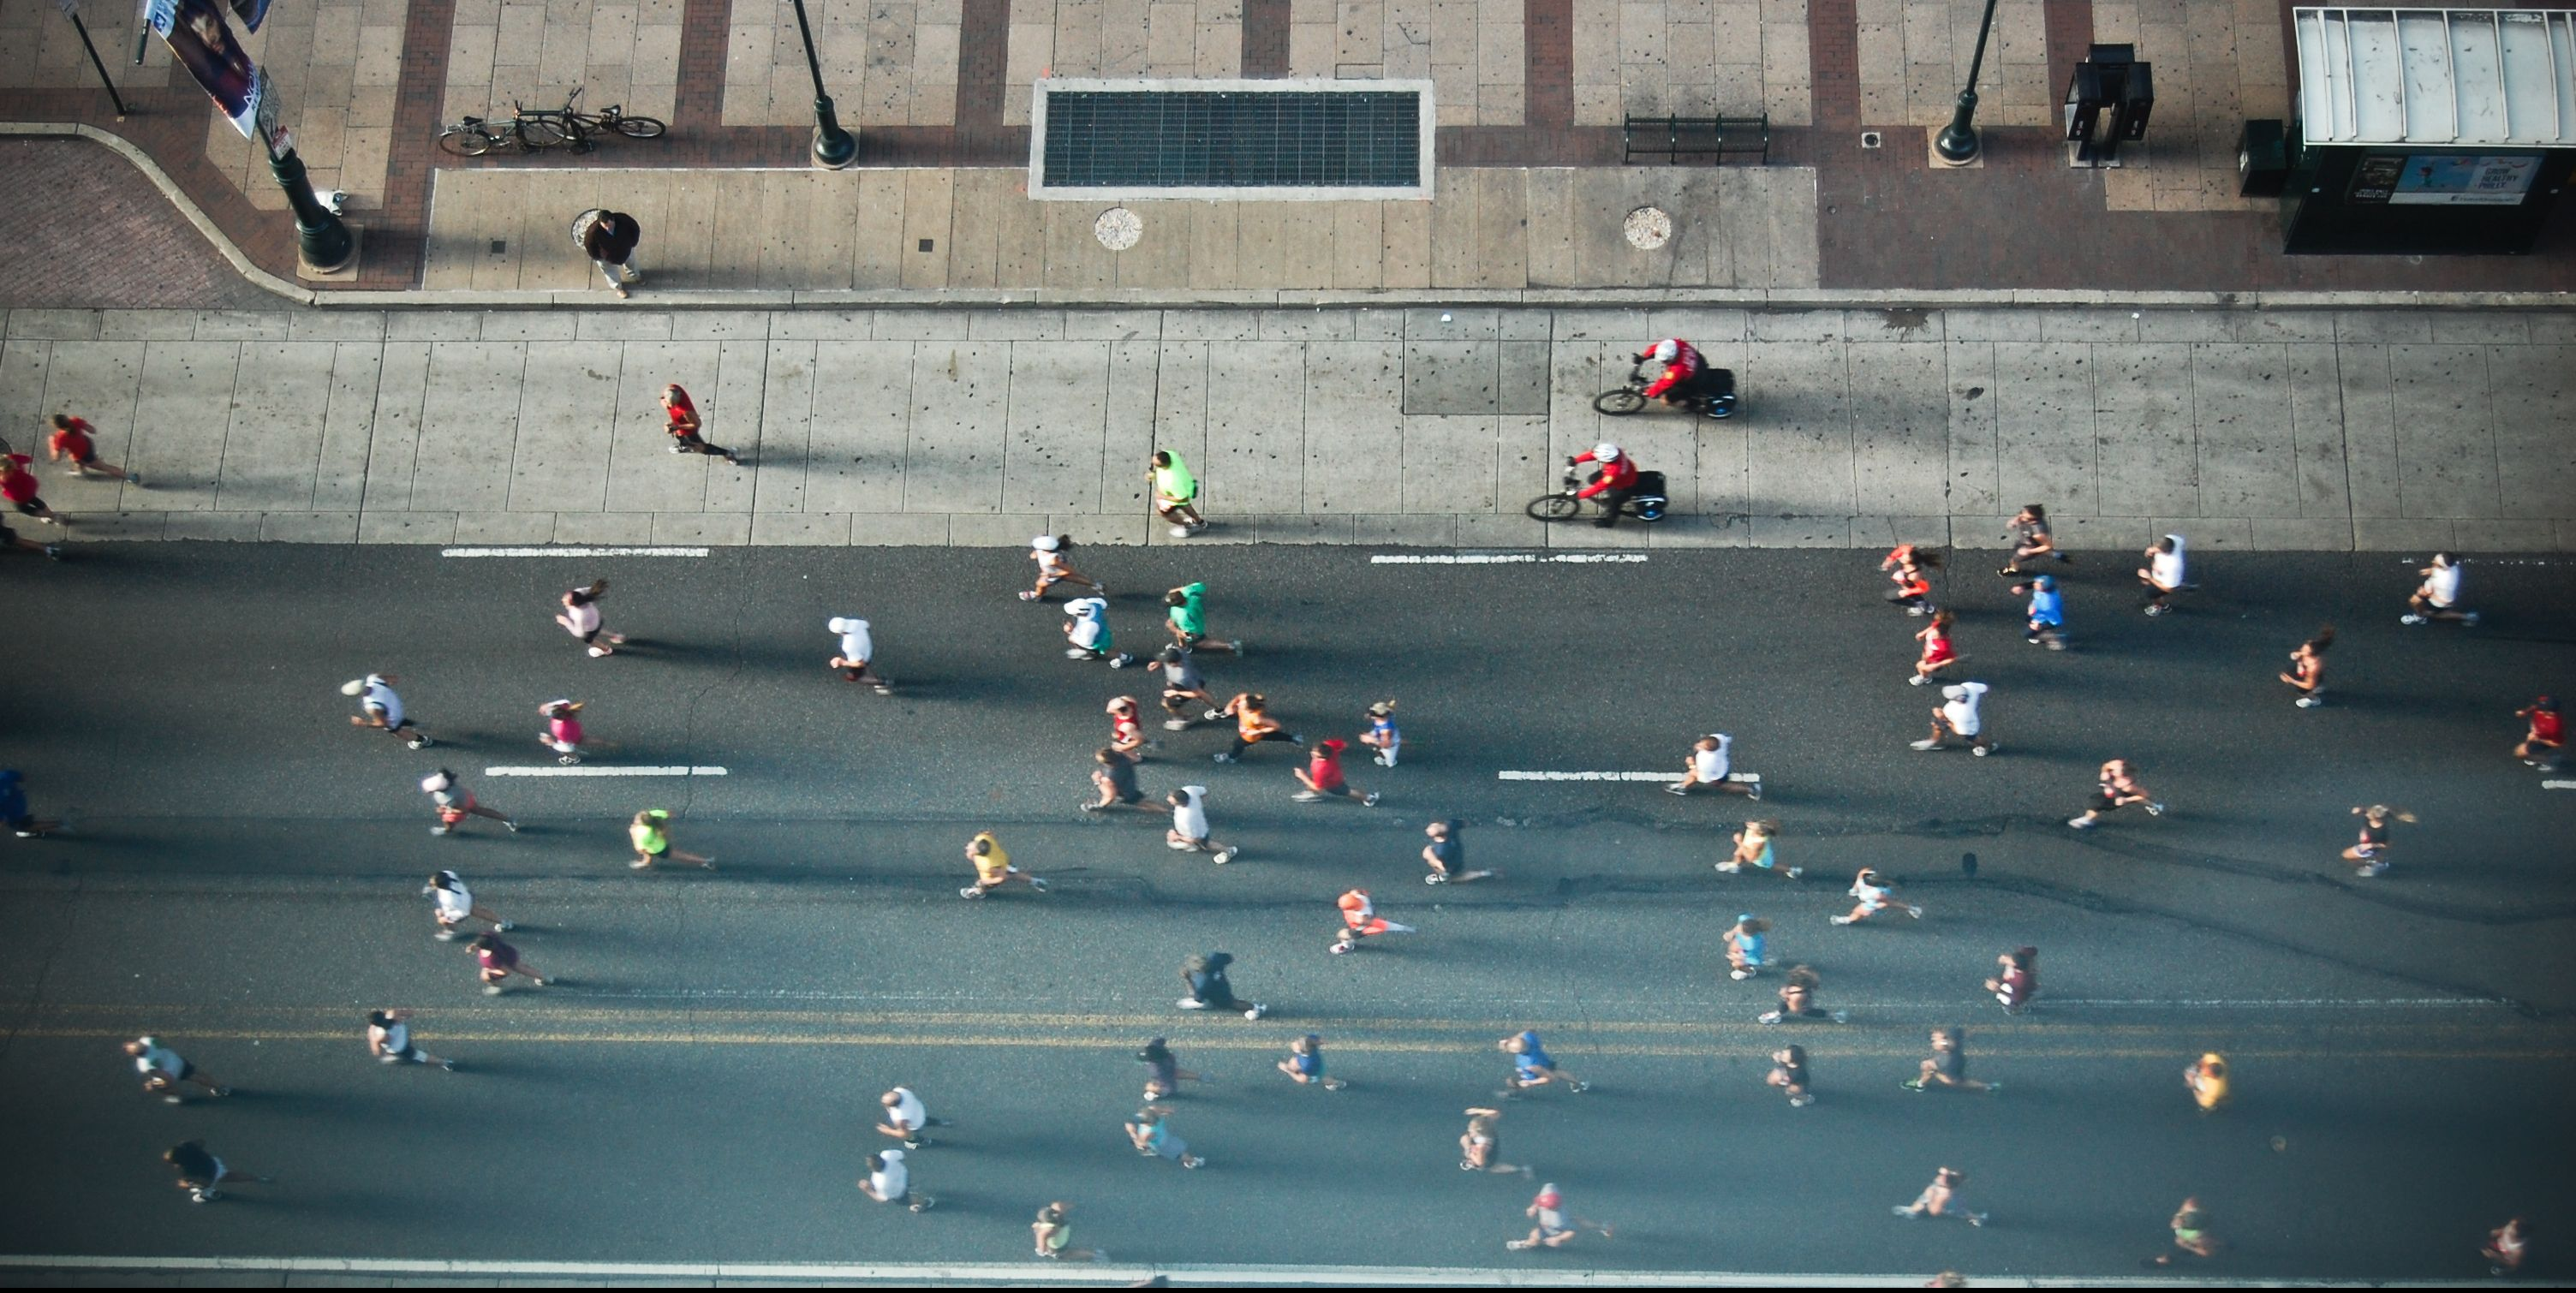 26.2 Thoughts You Have During a Marathon